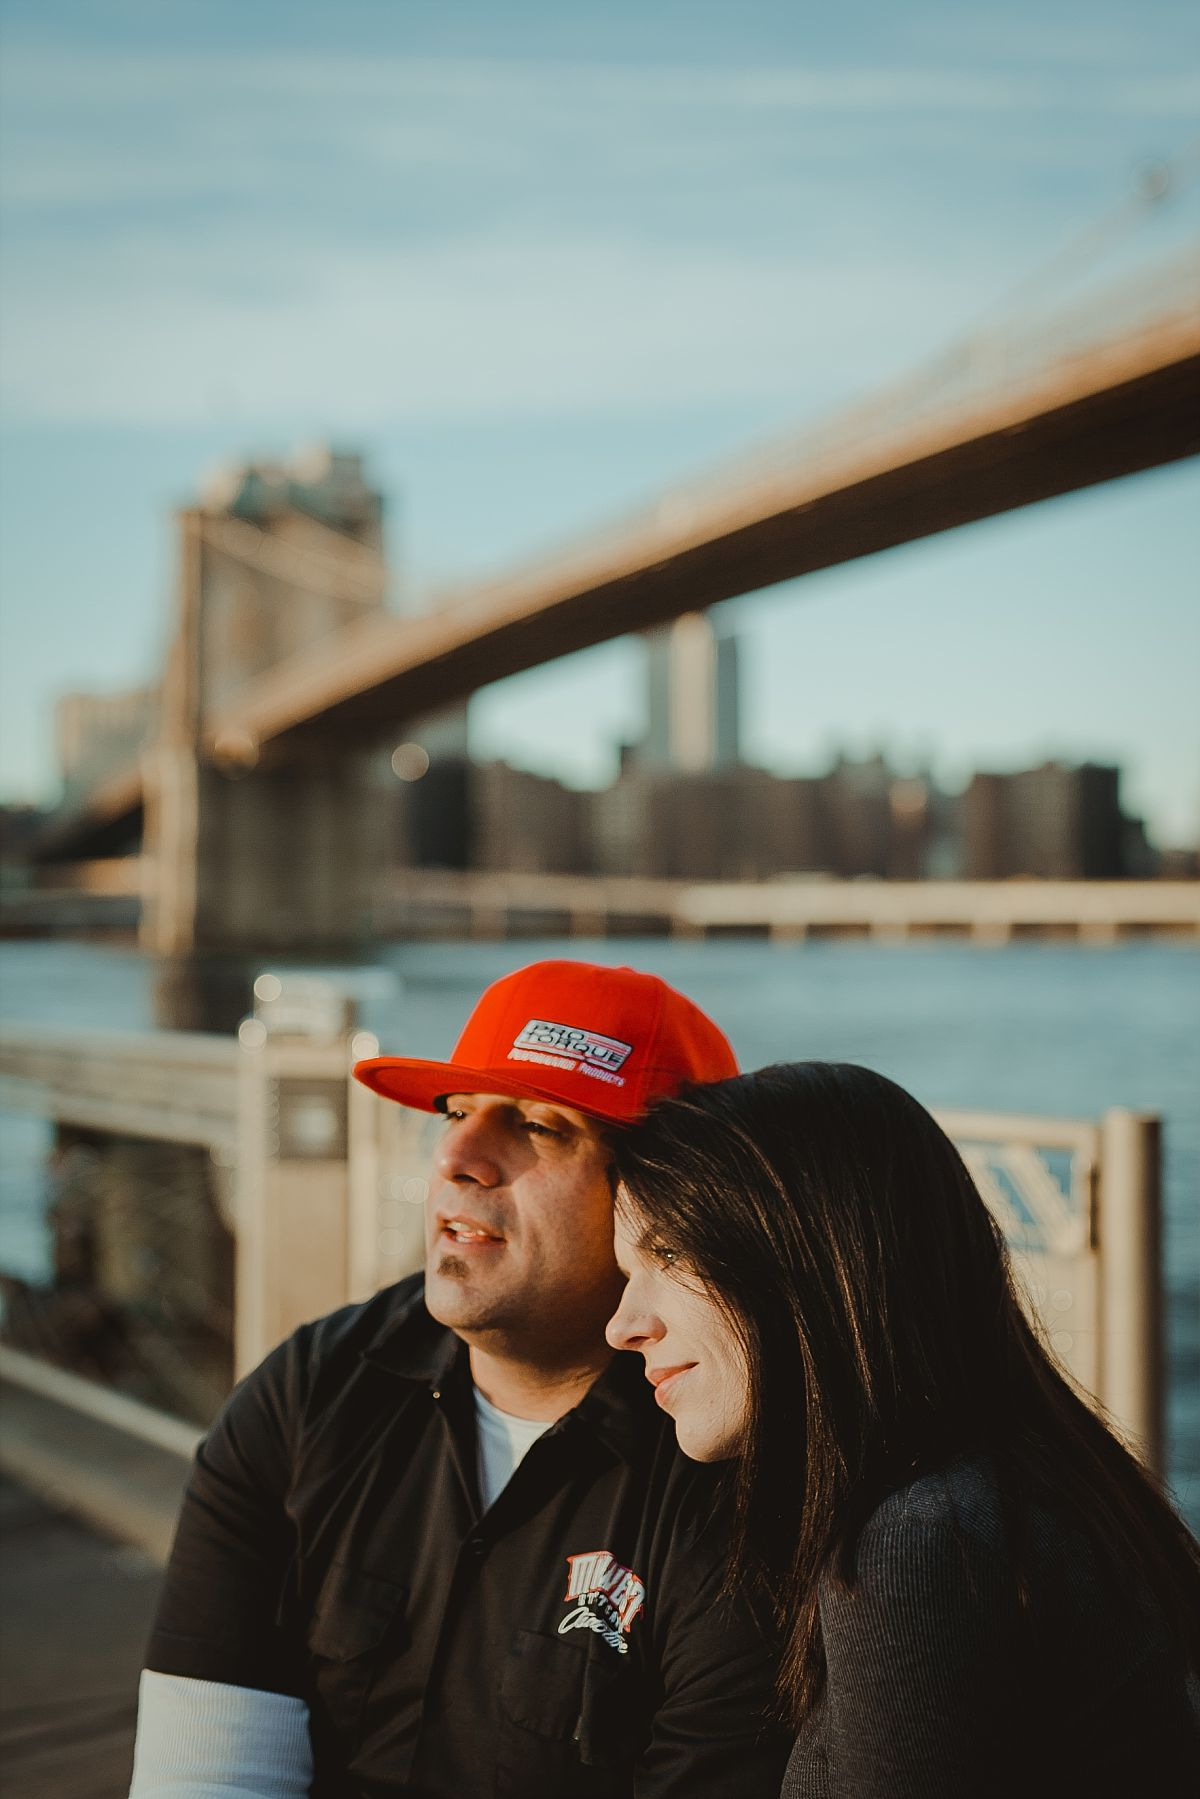 portrait of lovely couple with brooklyn bridge in the background.couple embraces on beach front in dumbo brooklyn looking out at beautiful manhattan skyline and brooklyn bridge. image by nyc family photographer krystil mcdowall